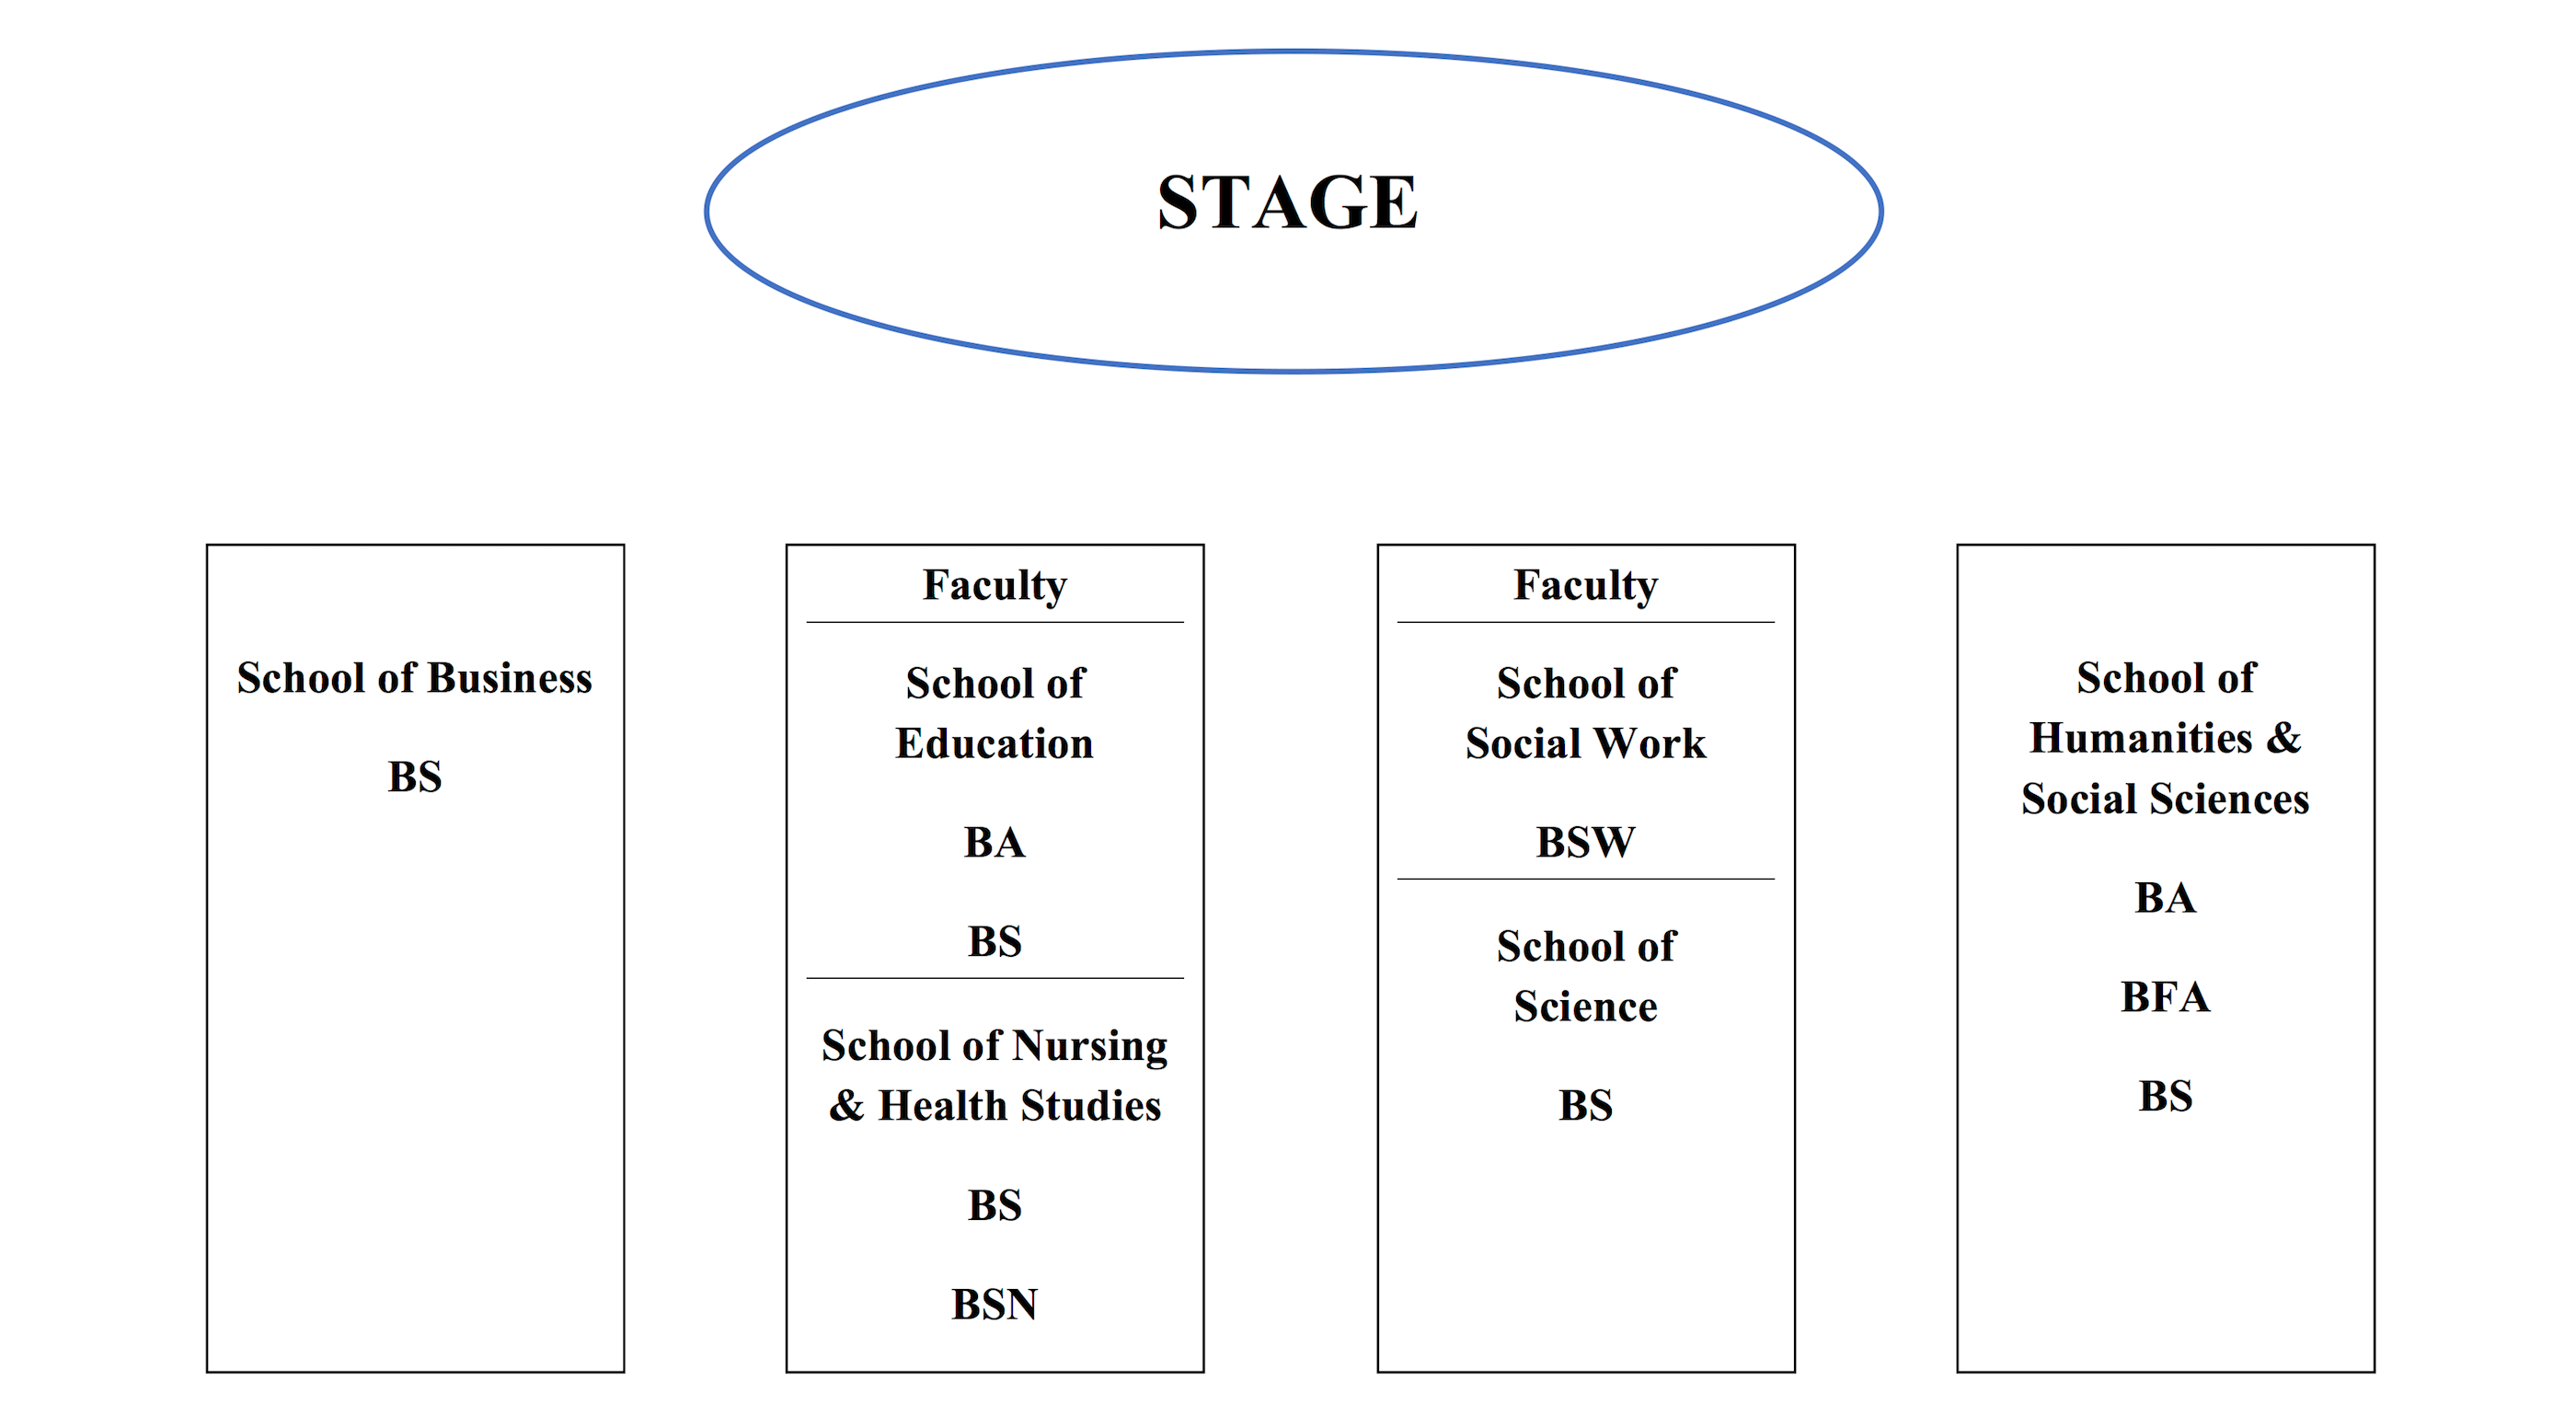 Each section of seats listed from front to back. Section One, Far left: School of Business students. Section Two, Mid-Left: Faculty, then School of Education students (B.A. in front, B.S. behind), then School of Nursing and Health Studies students (B.S. in front, B.S.N. behind). Section Three, Mid-Right: Faculty, then School of Social Work students, then School of Science students. Section Four, Far-Right: School of Humanities and Social Sciences students (B.A. in front, B.F.A.in the middle, then B.S. behind.